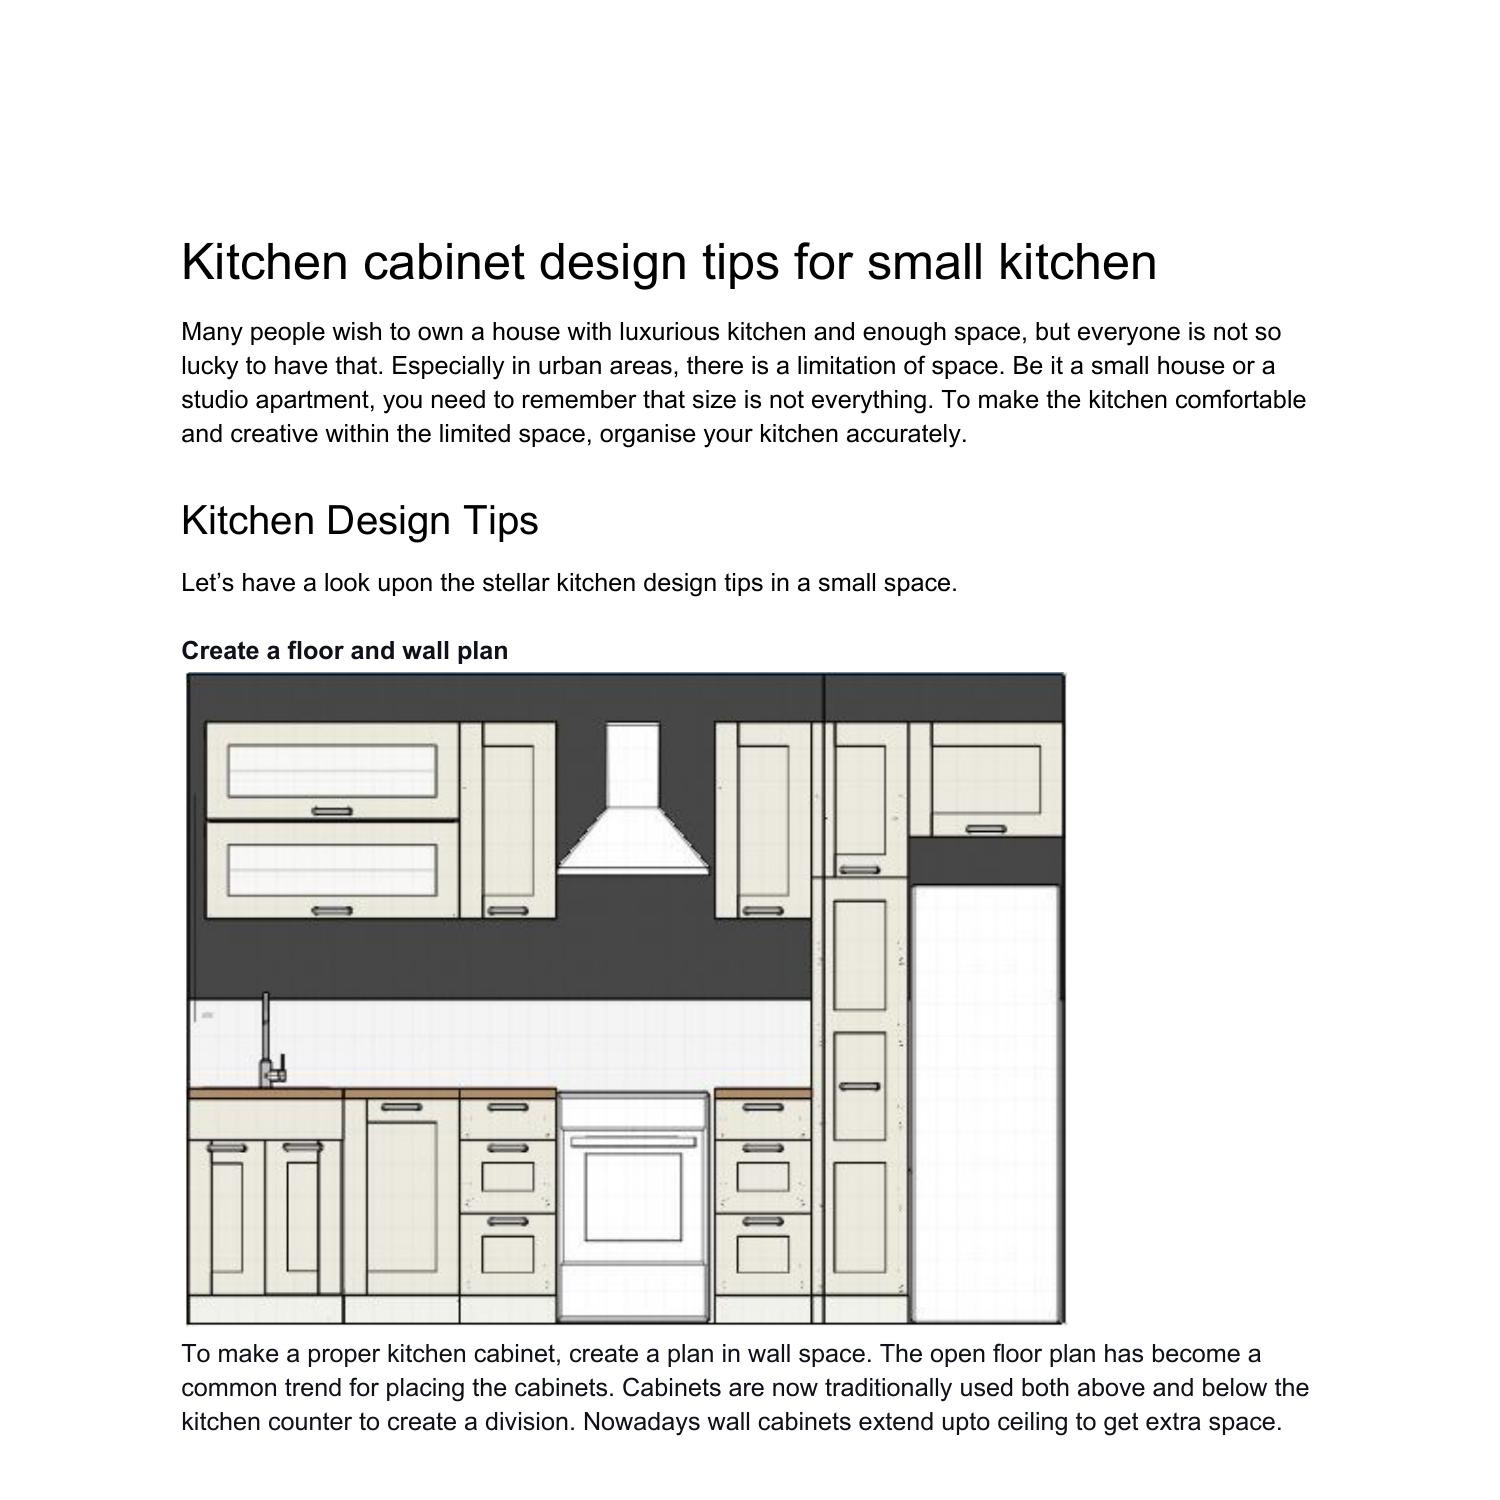 kitchen cabinet design tips for small kitchen 9.pdf   DocDroid